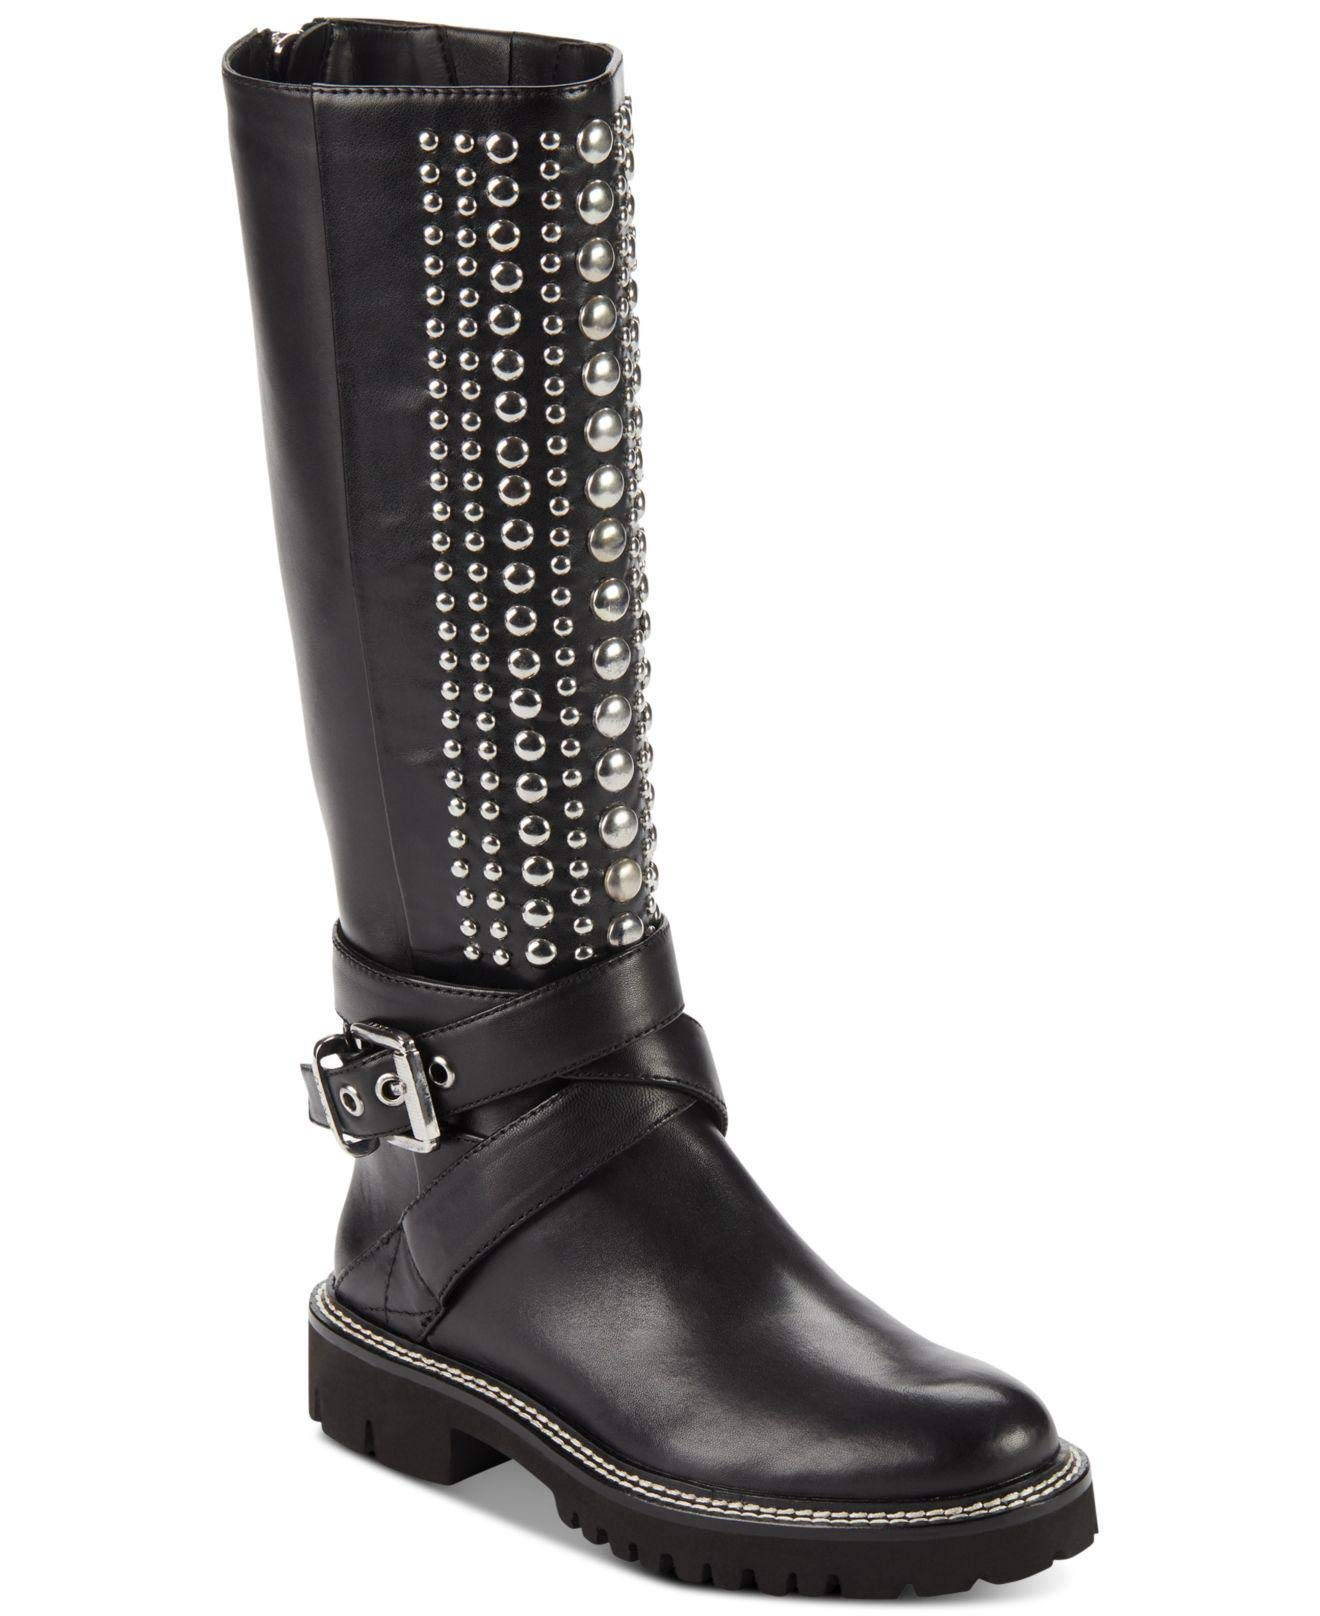 DKNY Womens Babz Leather Round Toe Knee High Riding Boots, Black, Size 6.5 US/US